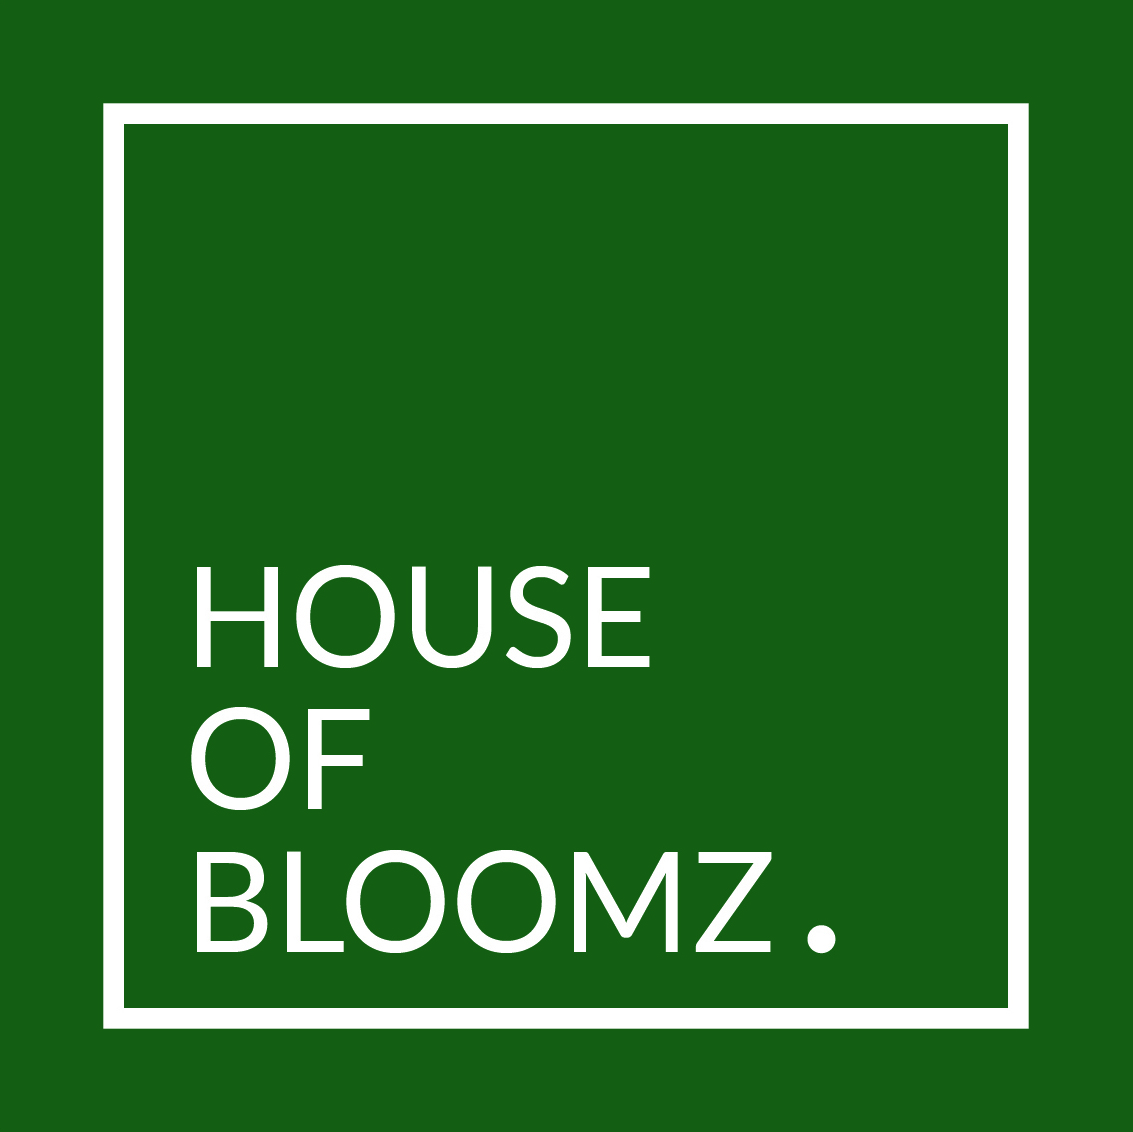 House of Bloomz